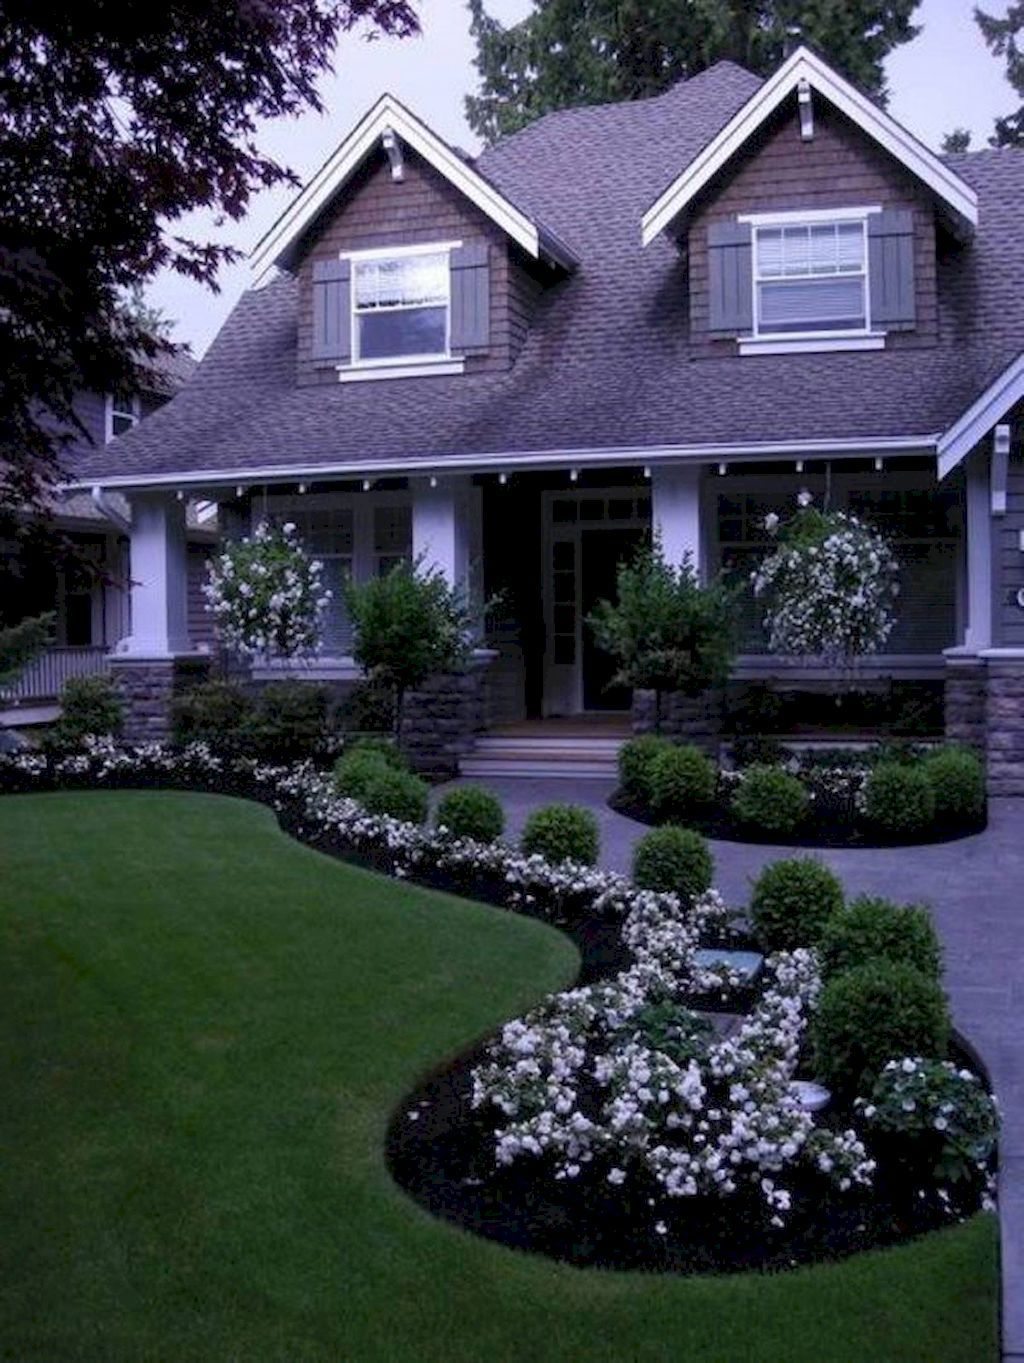 40 beautiful front yard landscaping ideas yard for Modern garden designs for front of house